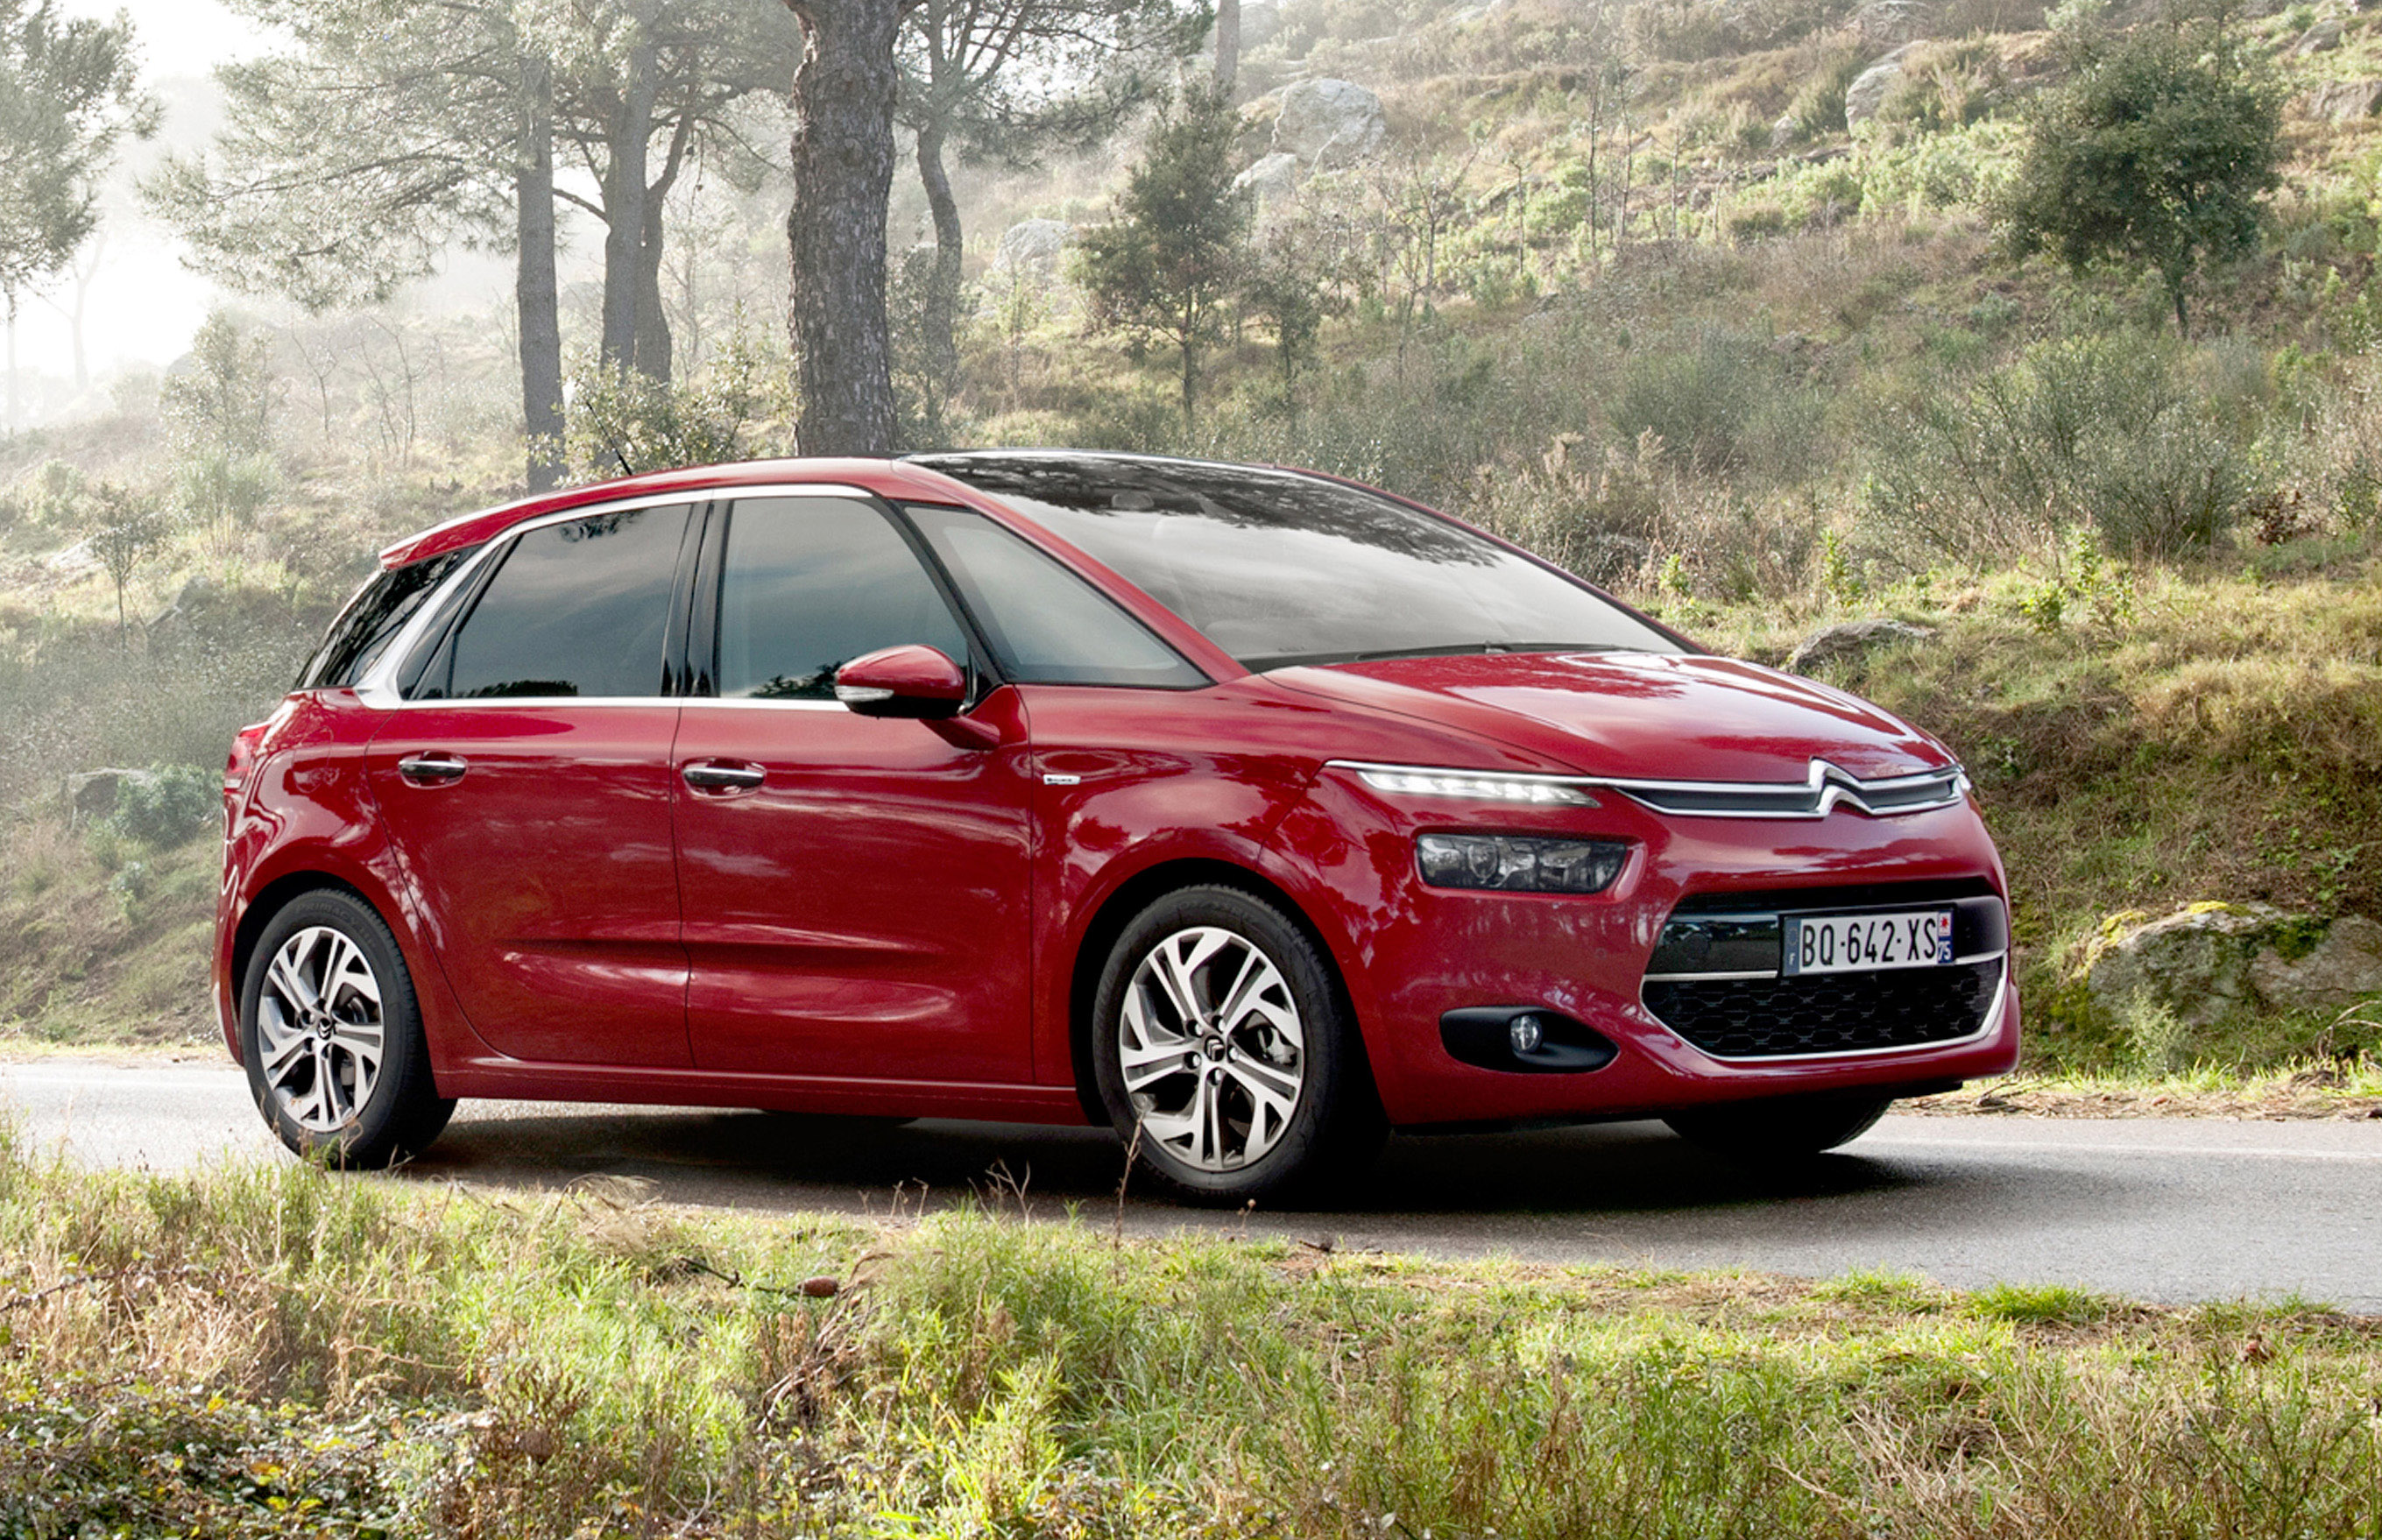 2014 citroen c4 picasso technospace revealed. Black Bedroom Furniture Sets. Home Design Ideas